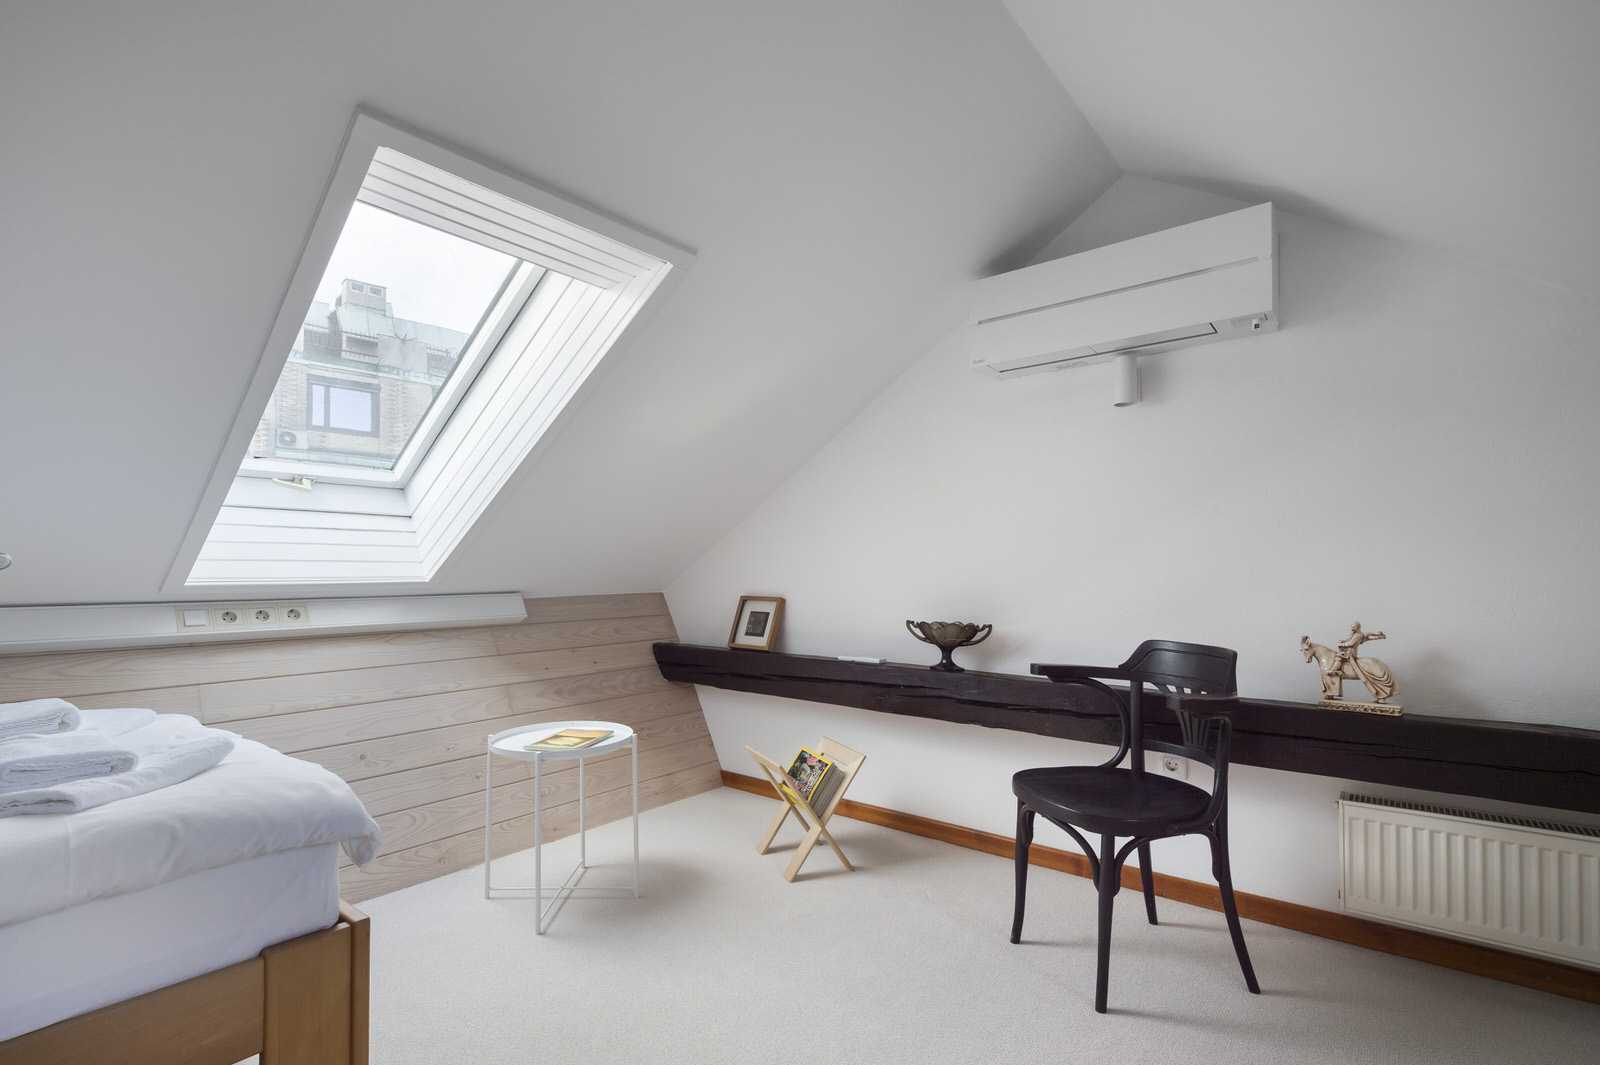 One of the bedrooms is in the loft.